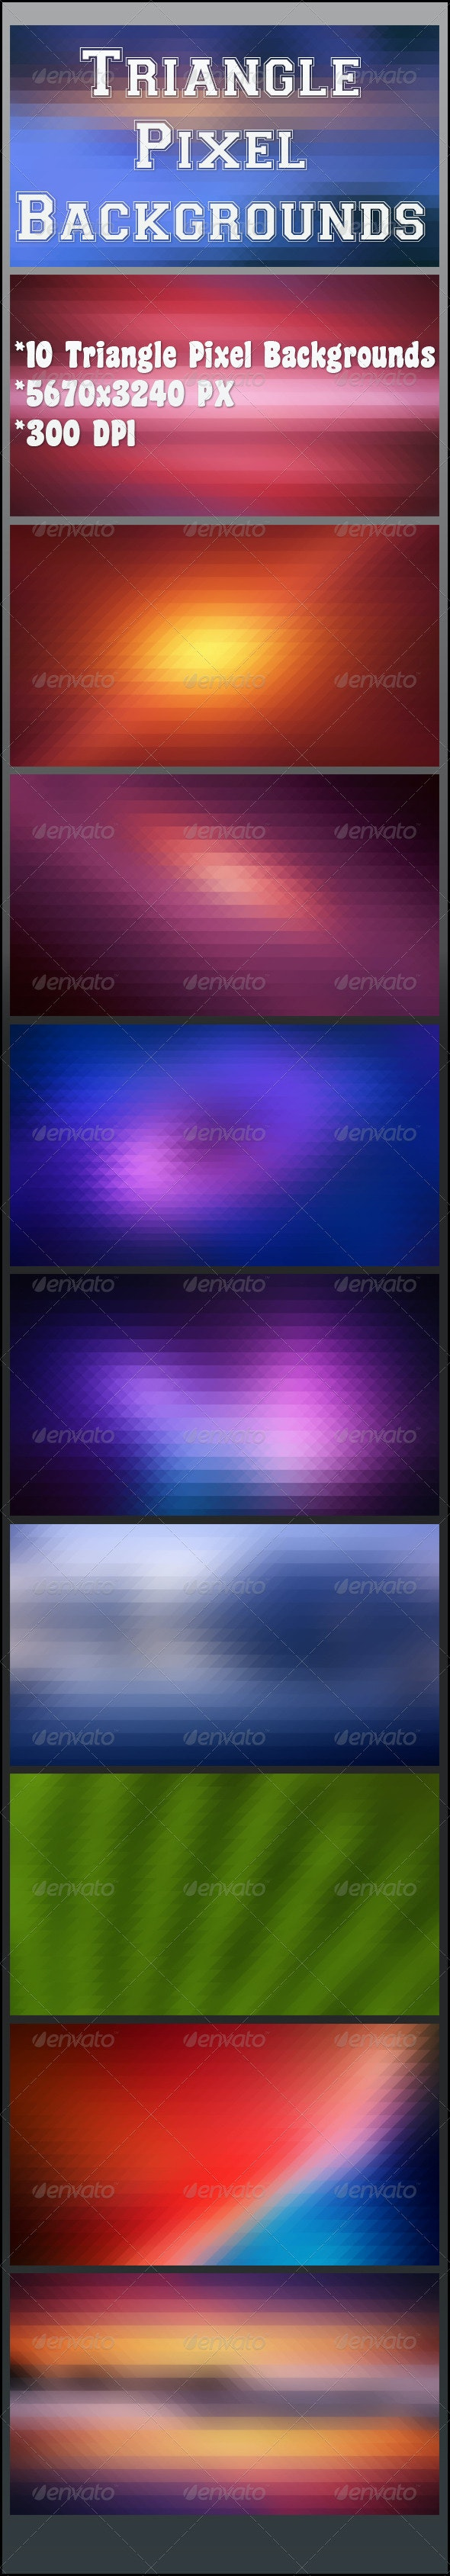 Triangle Pixel Backgrounds - Abstract Backgrounds